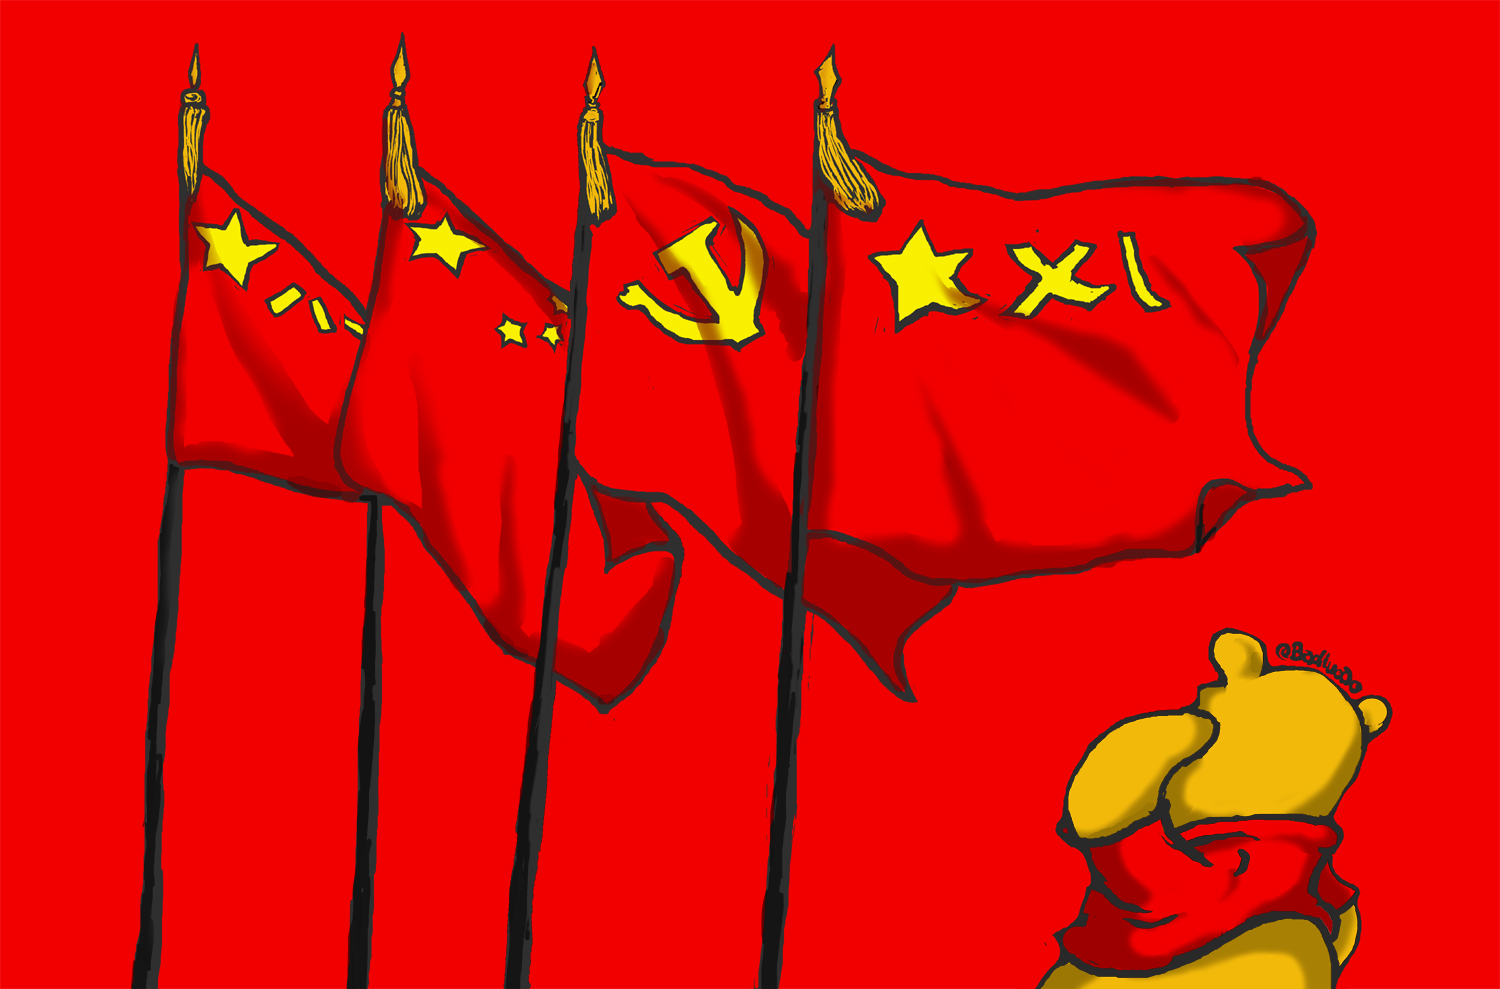 习家旗 flag of XI